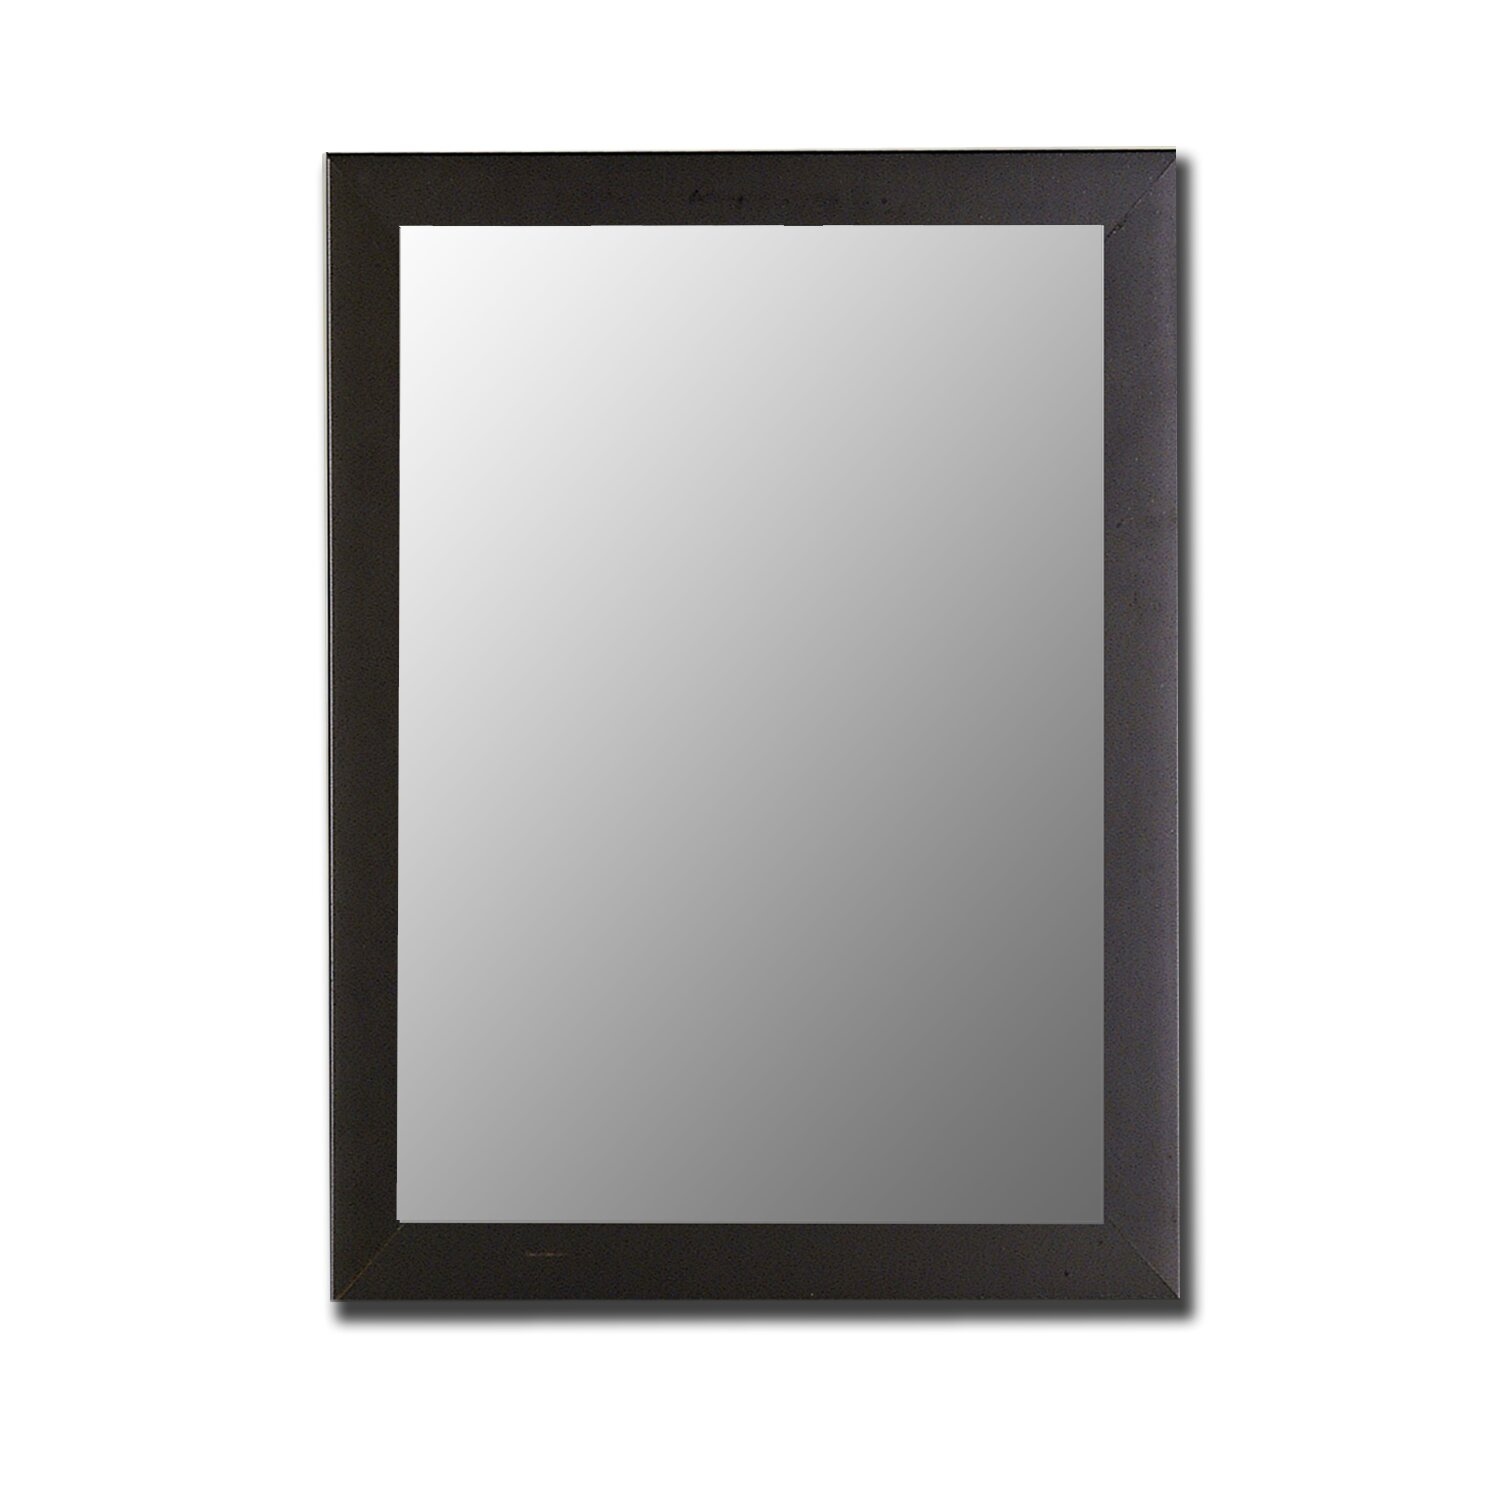 Hitchcock butterfield company modern satin black wall for Mirror black